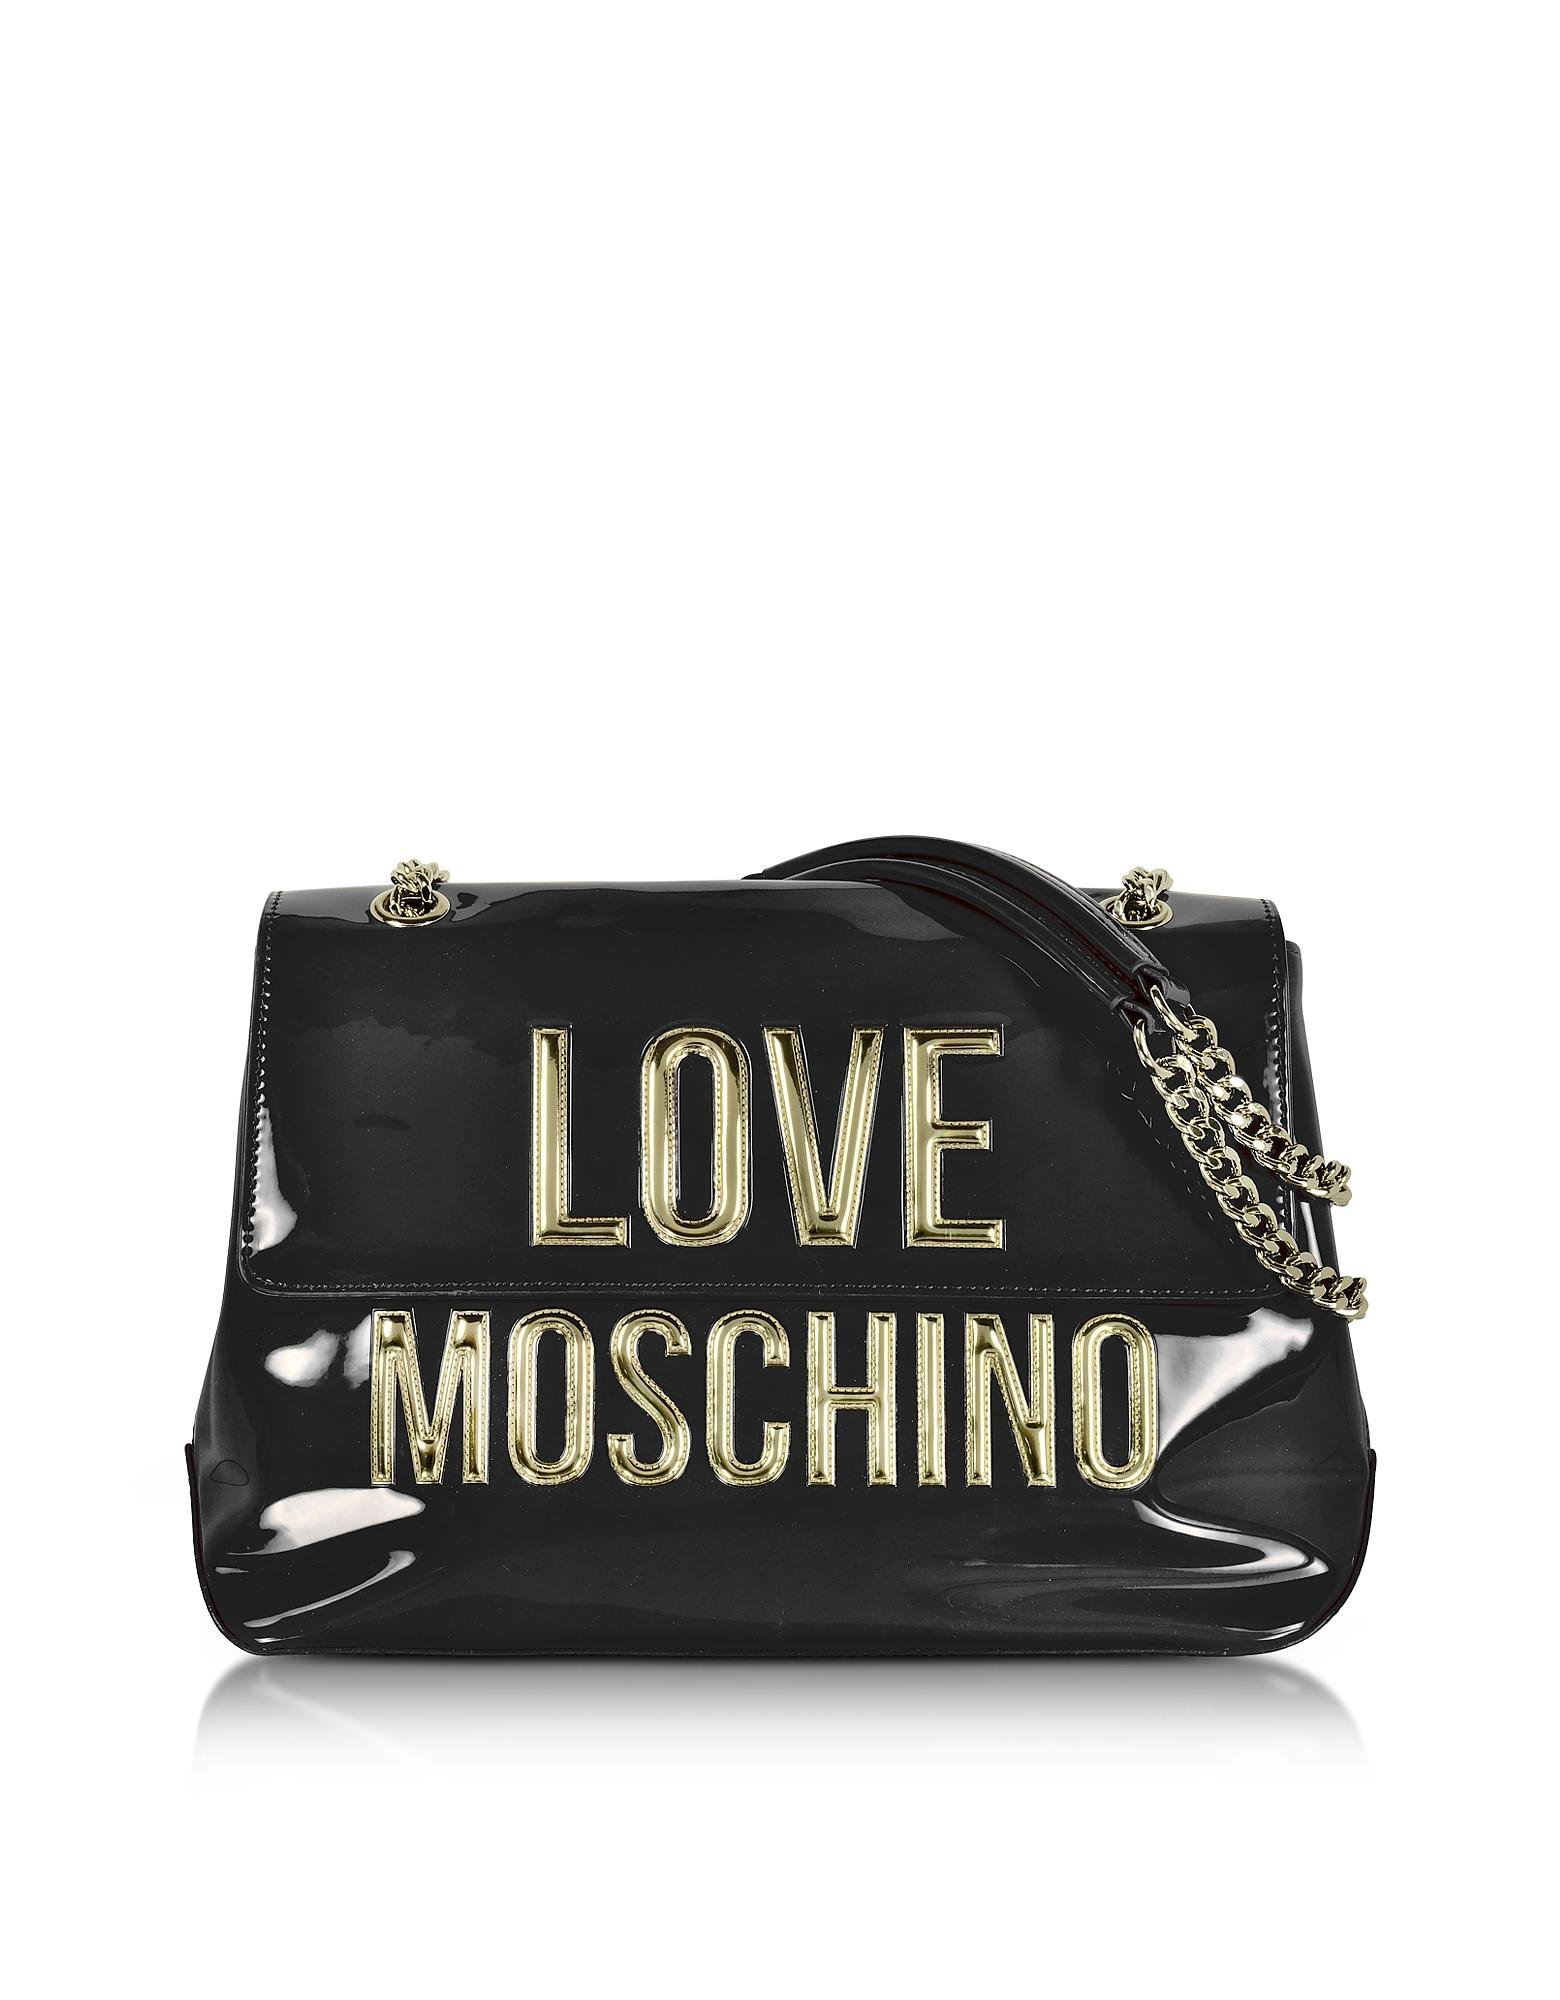 love moschino black patent eco leather shoulder bag w signature logo in black lyst. Black Bedroom Furniture Sets. Home Design Ideas